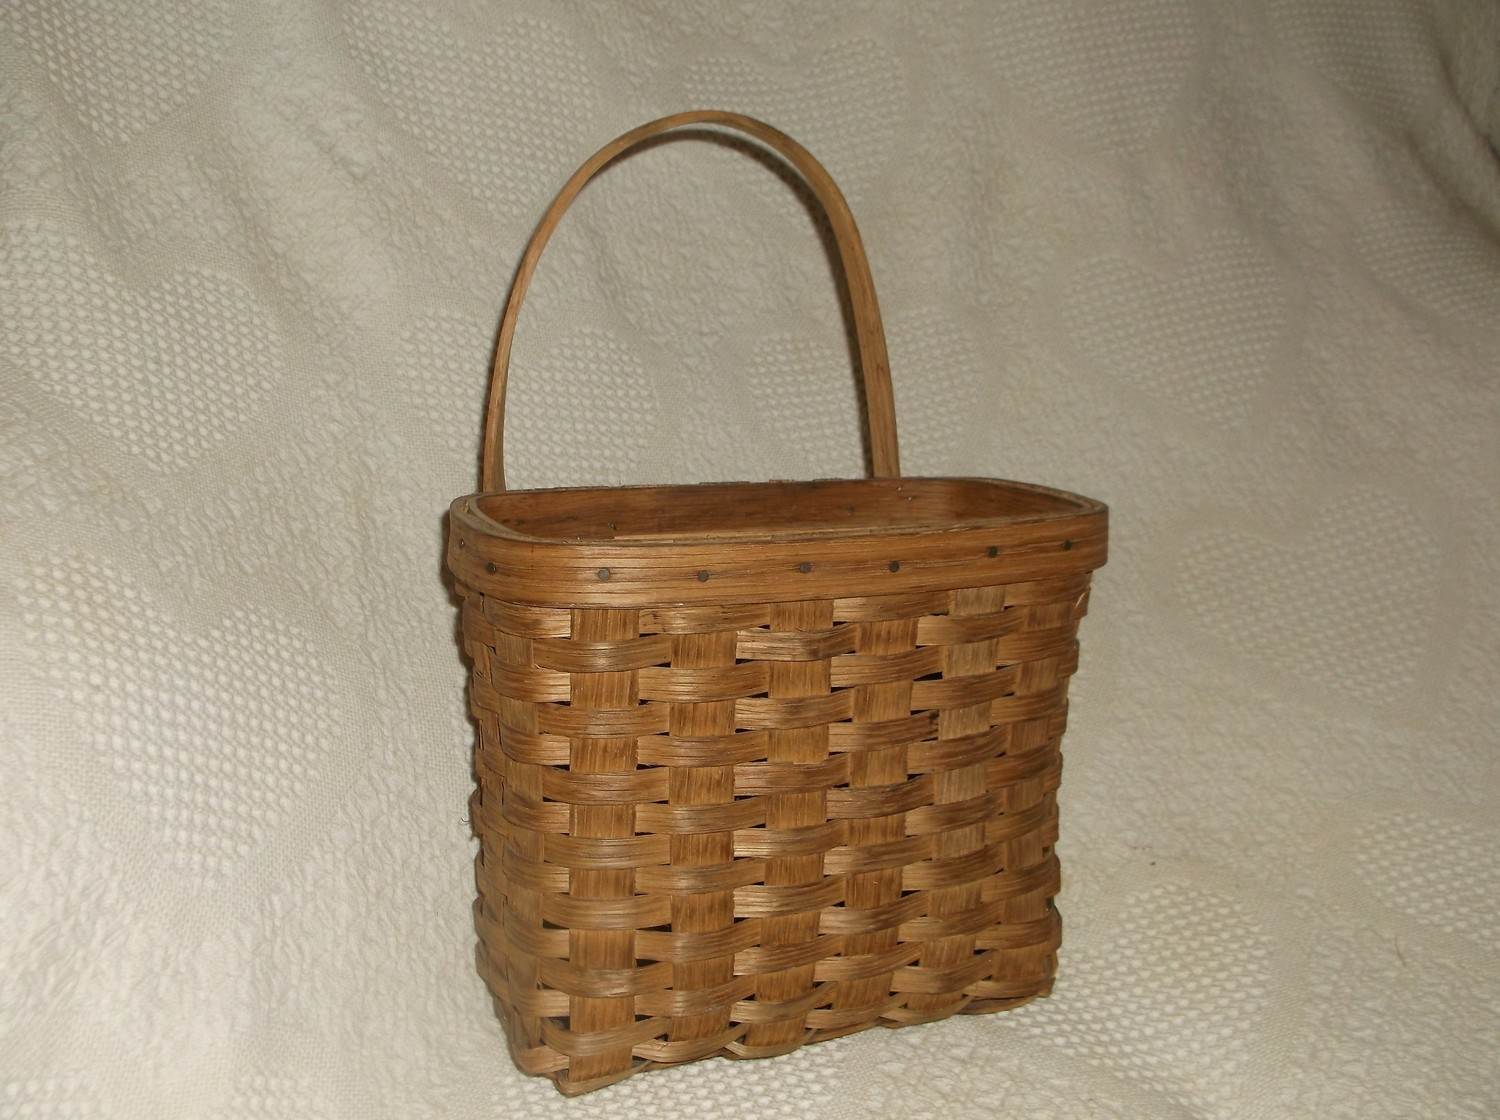 Wall Magazine Basket - 9.5x6x8.5